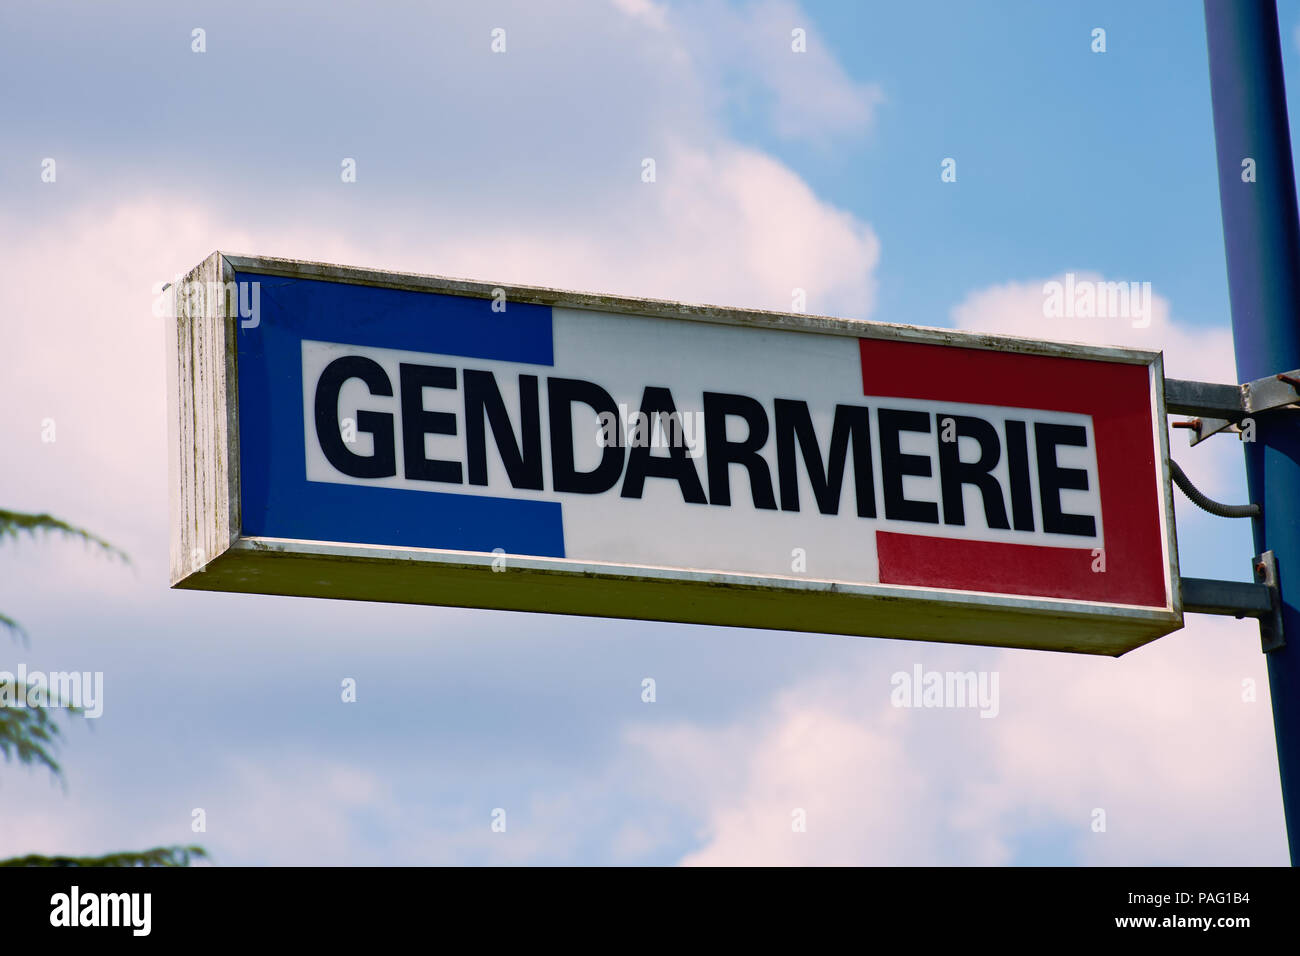 sign with the word Gendarmerie, the French policy - Stock Image